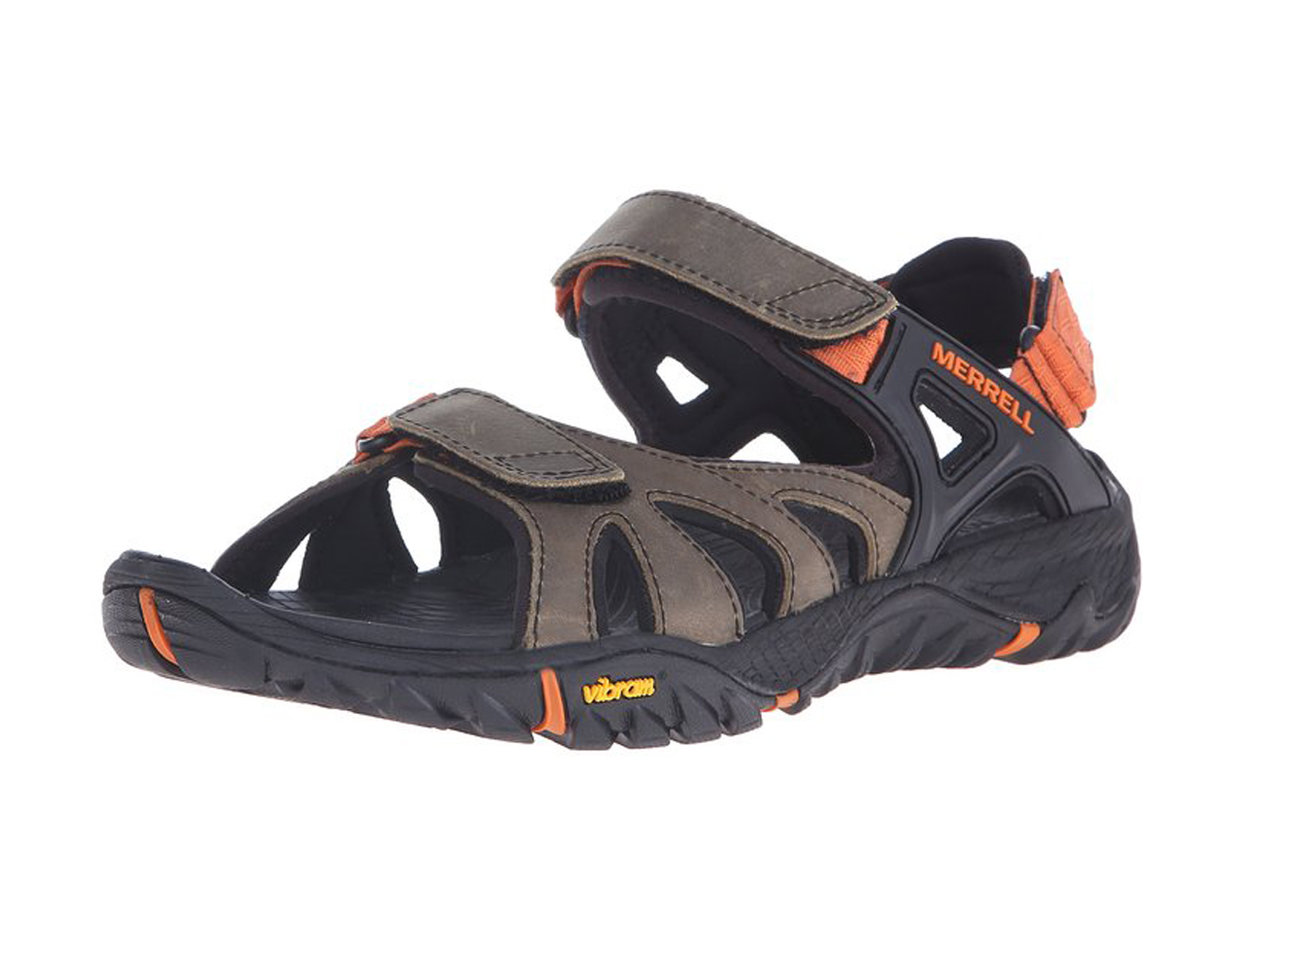 Bekleidung Herren Original Merrell All Out Blaze Sieve Convertible Men Hiking Sandals All Sizes